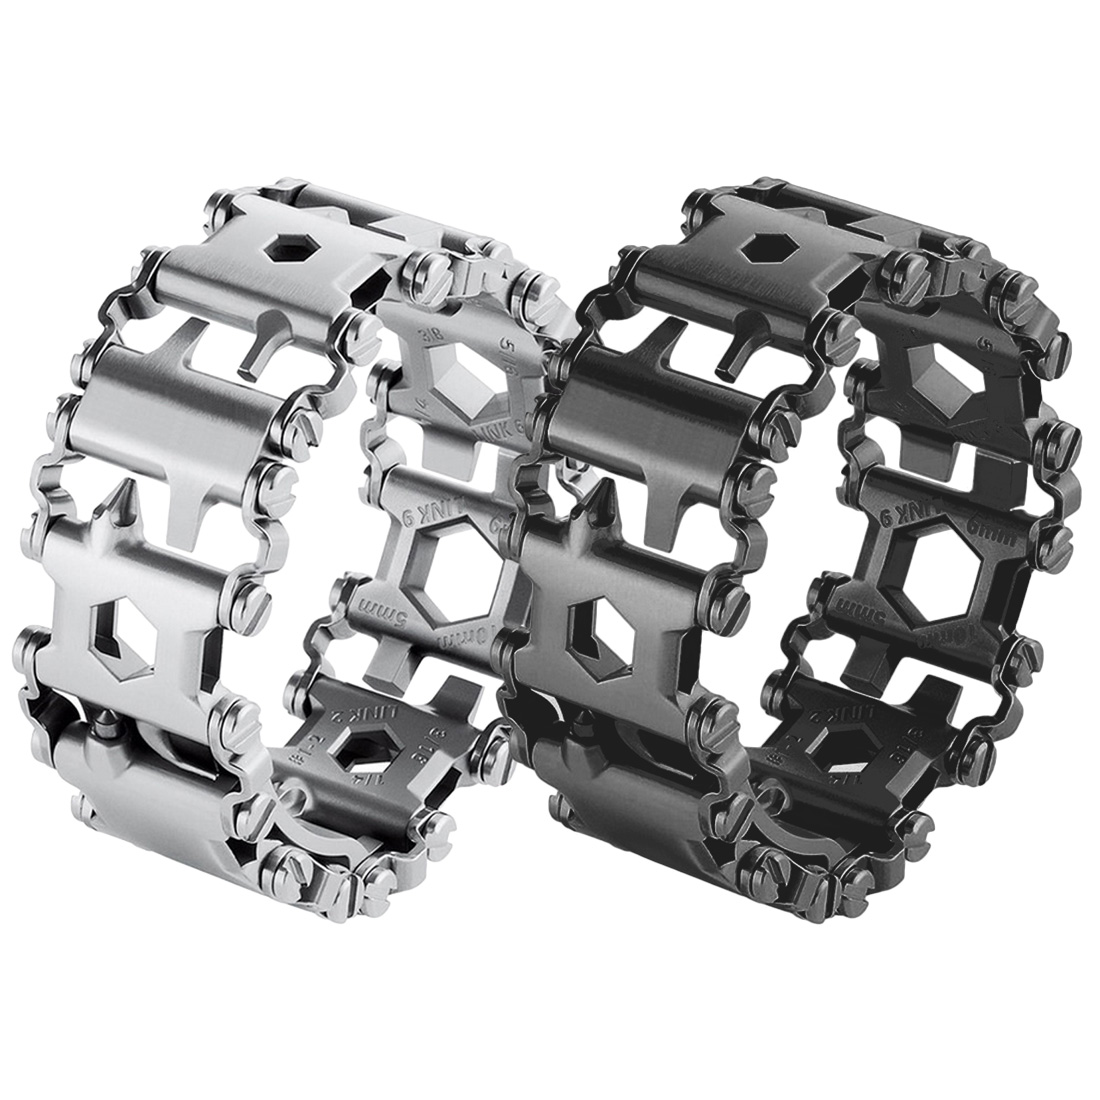 Brand New <font><b>29</b></font> <font><b>In</b></font> <font><b>1</b></font> <font><b>Multi</b></font>-function Wearable Tread <font><b>Bracelet</b></font> Strap <font><b>Multi</b></font>-function Screwdriver Outdoor Emergency Kit <font><b>Multi</b></font> <font><b>Tool</b></font> image